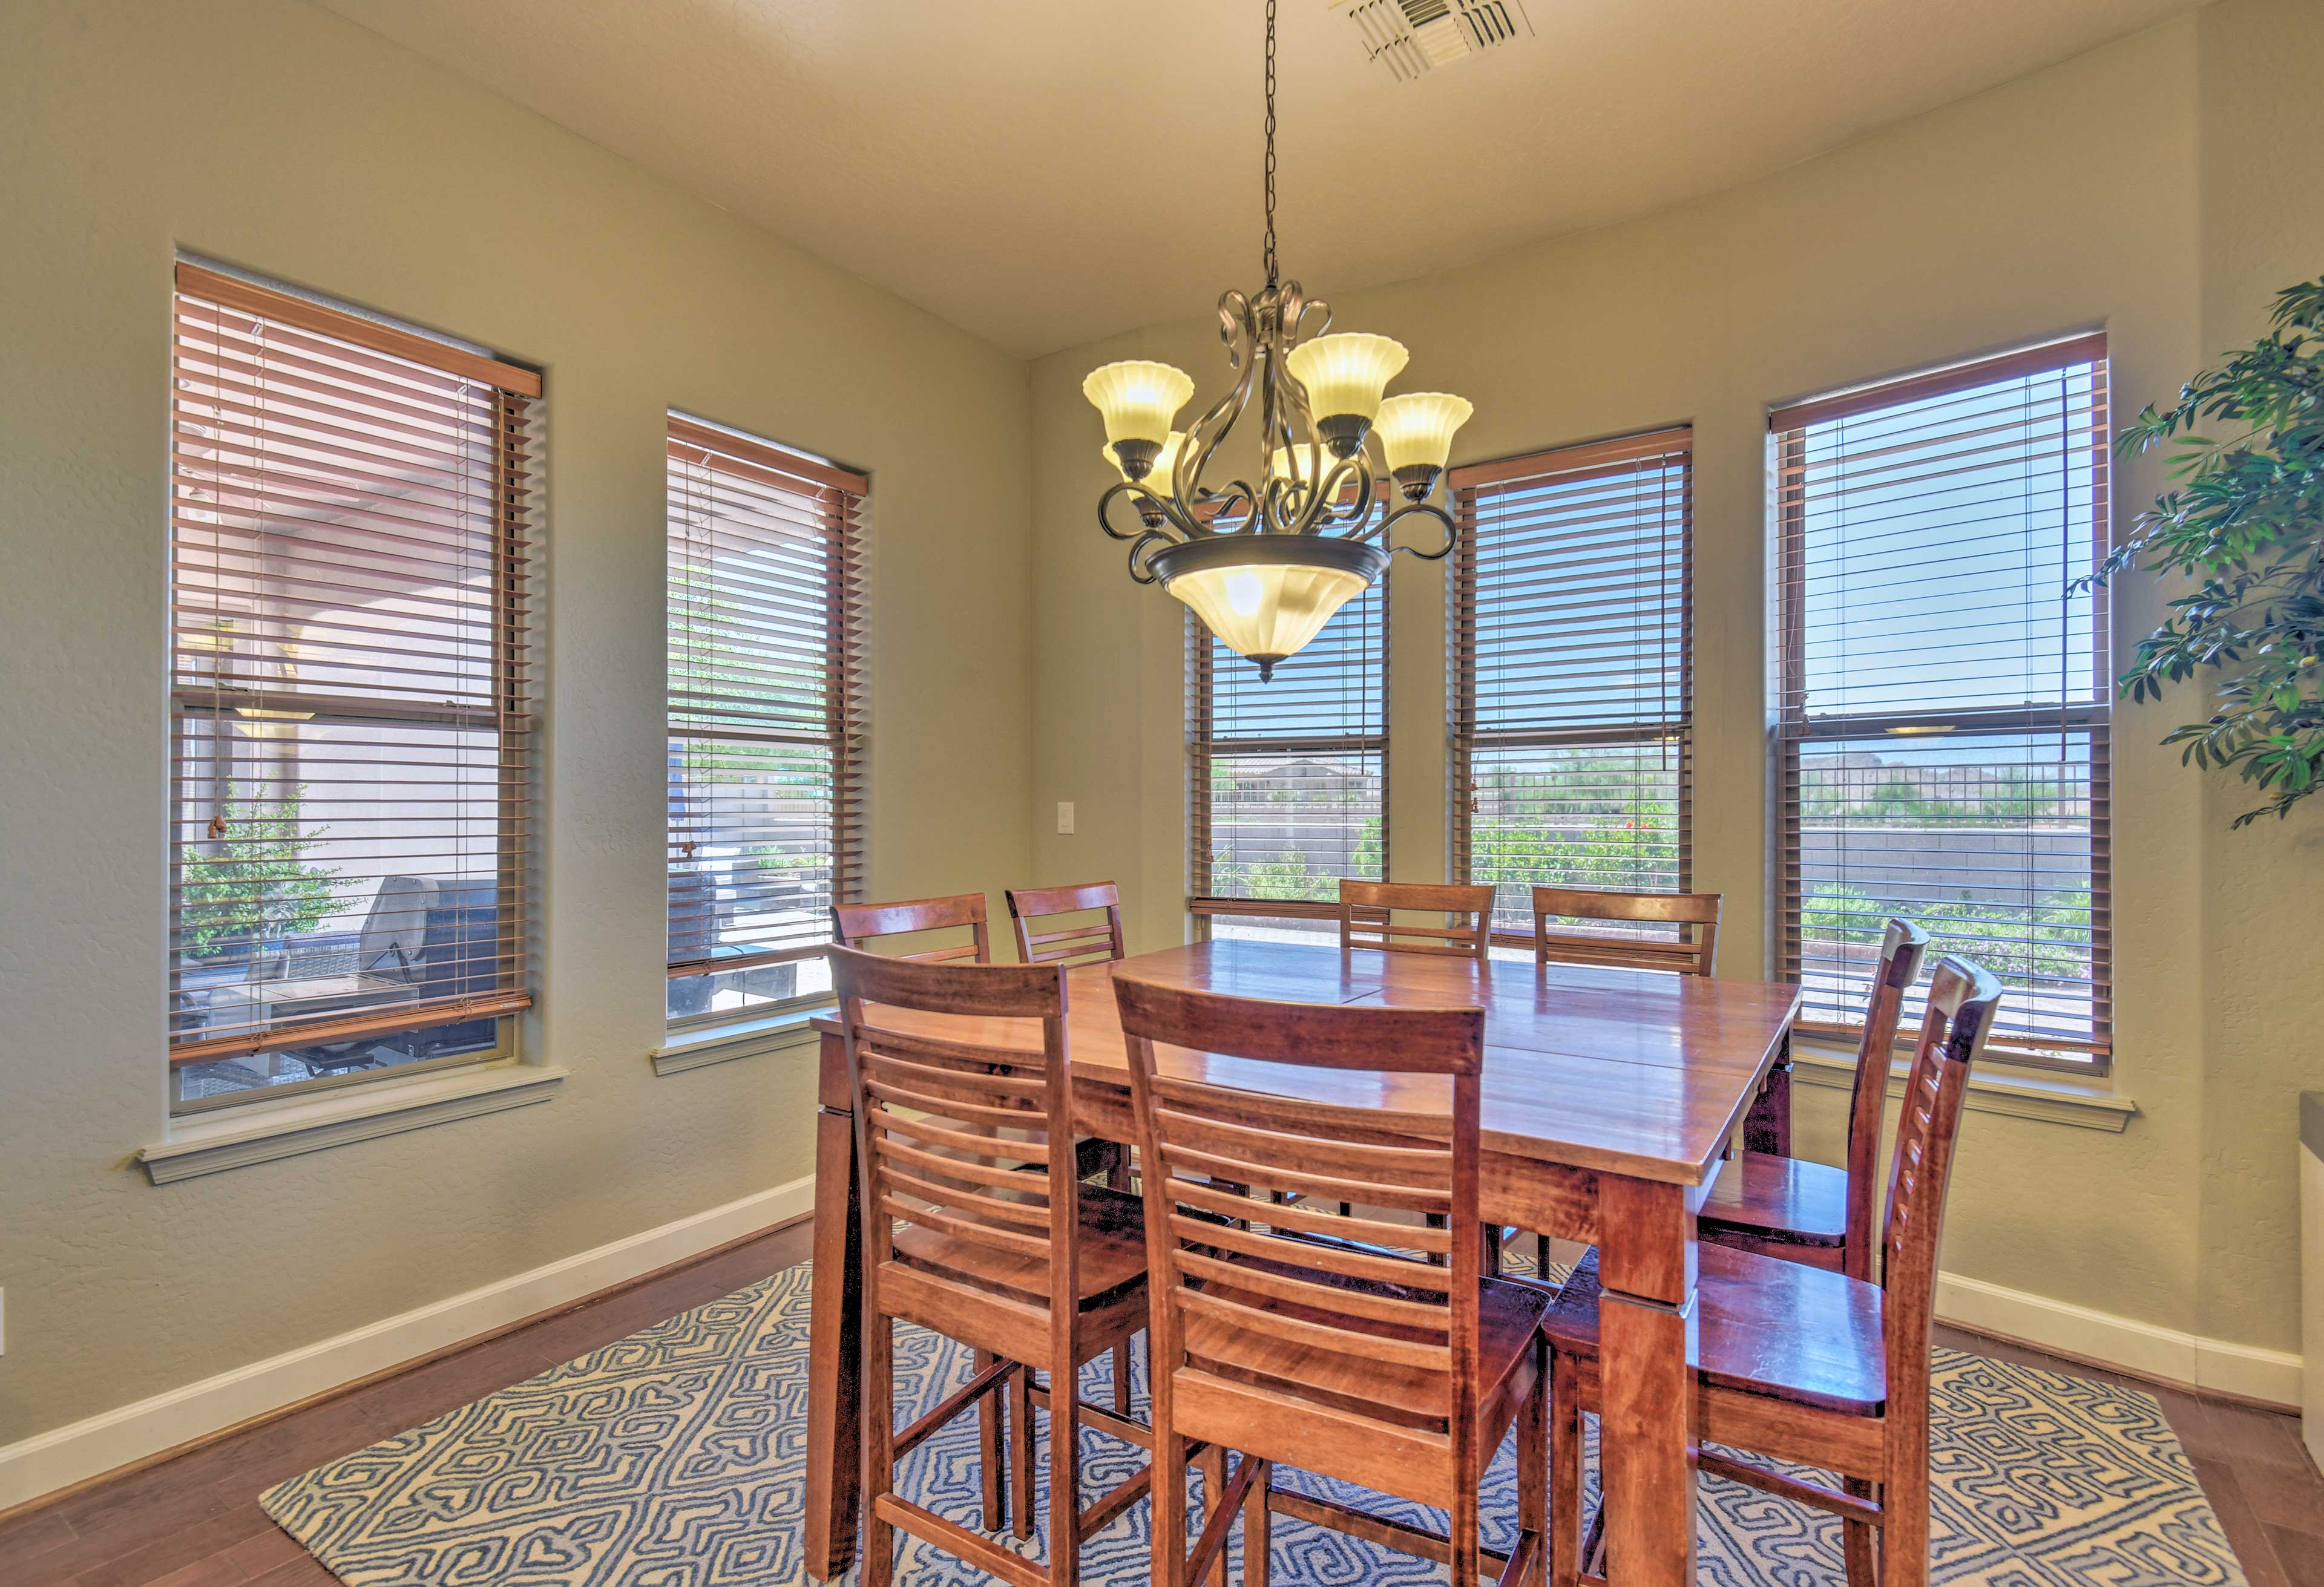 Large windows surround the dining table.